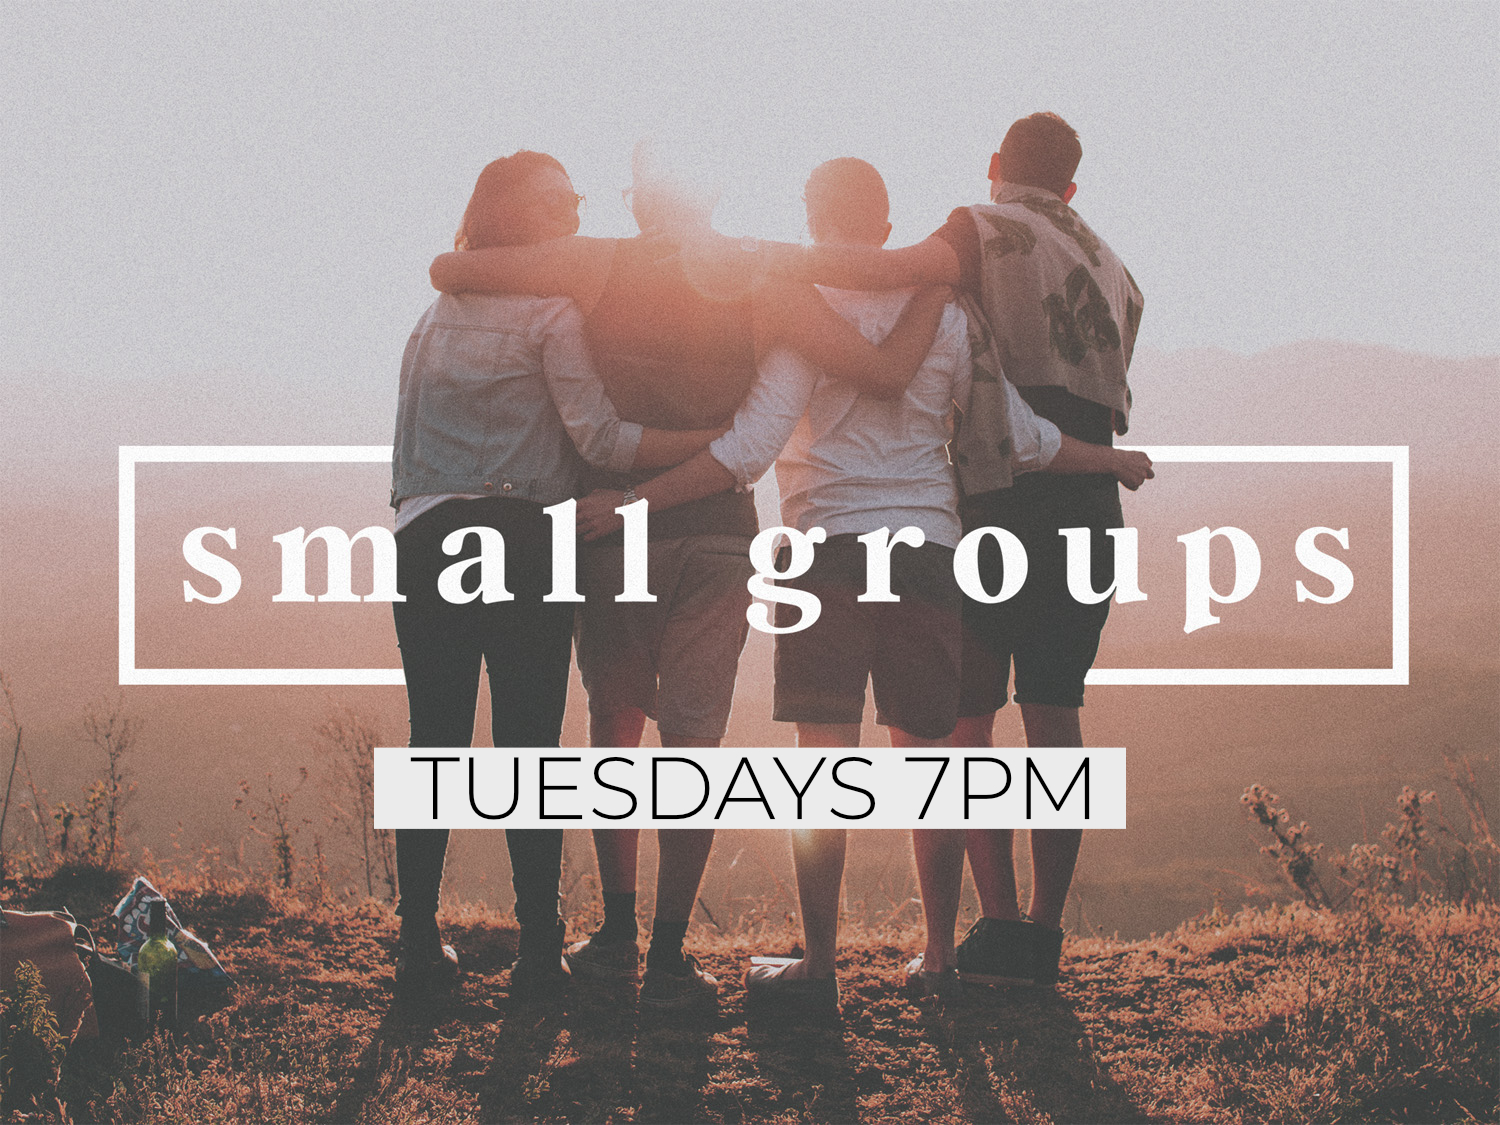 small_groups-title-1-Standard 4x3